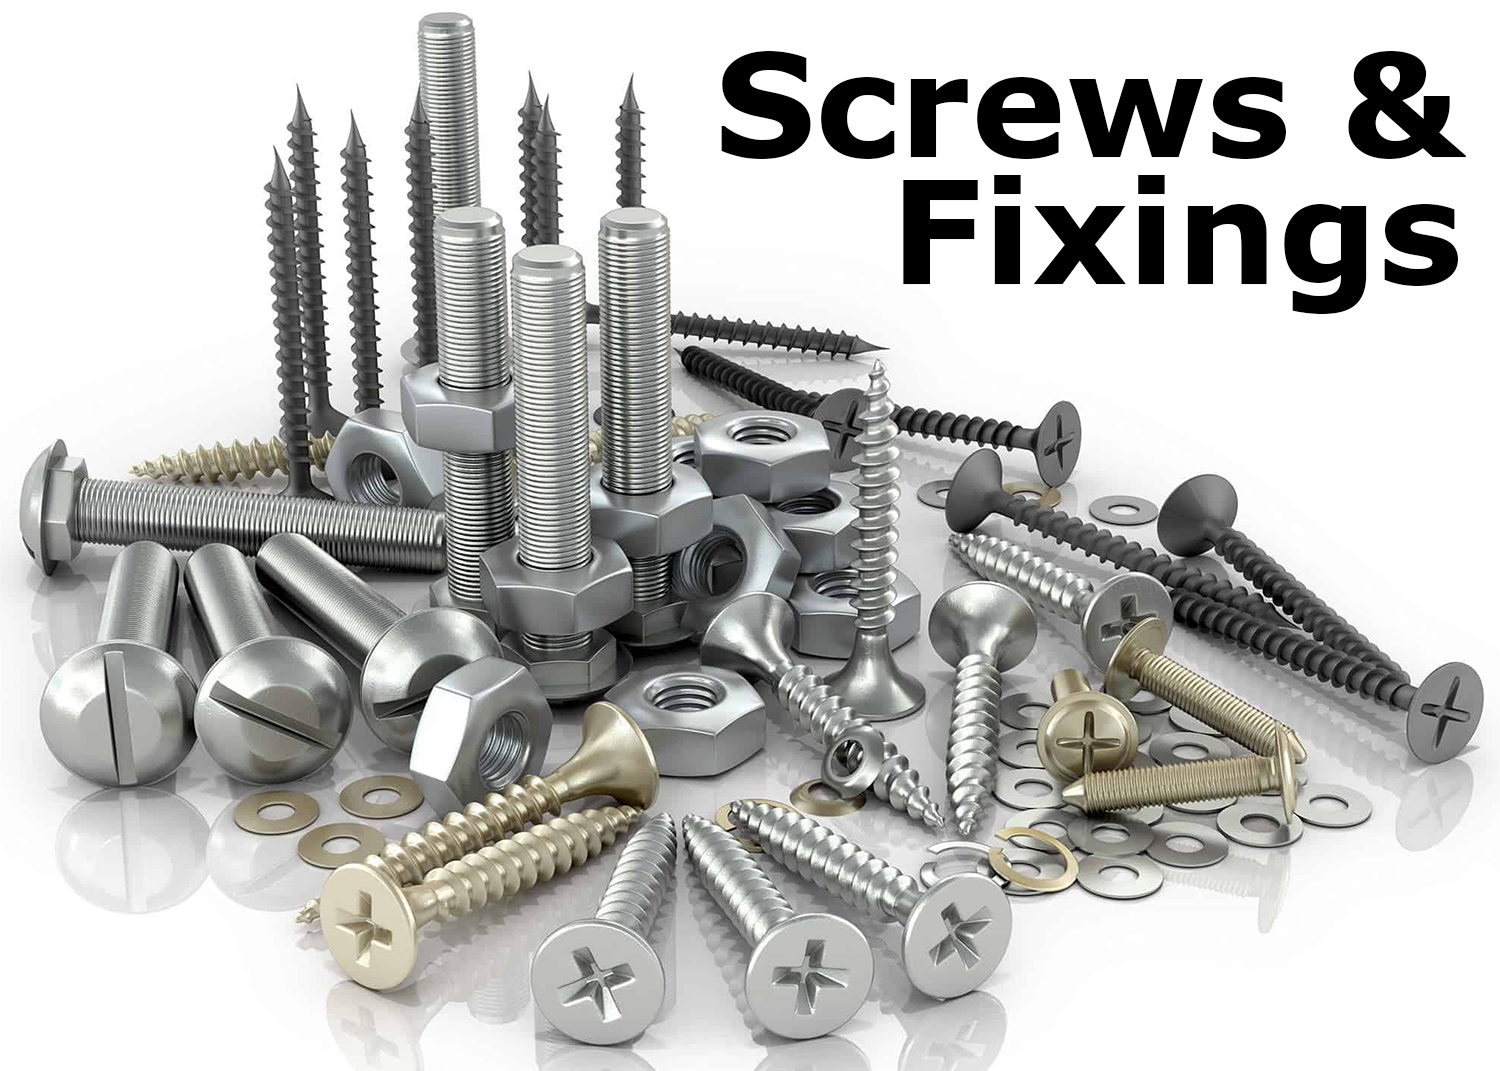 Our Screws & Fixings Range